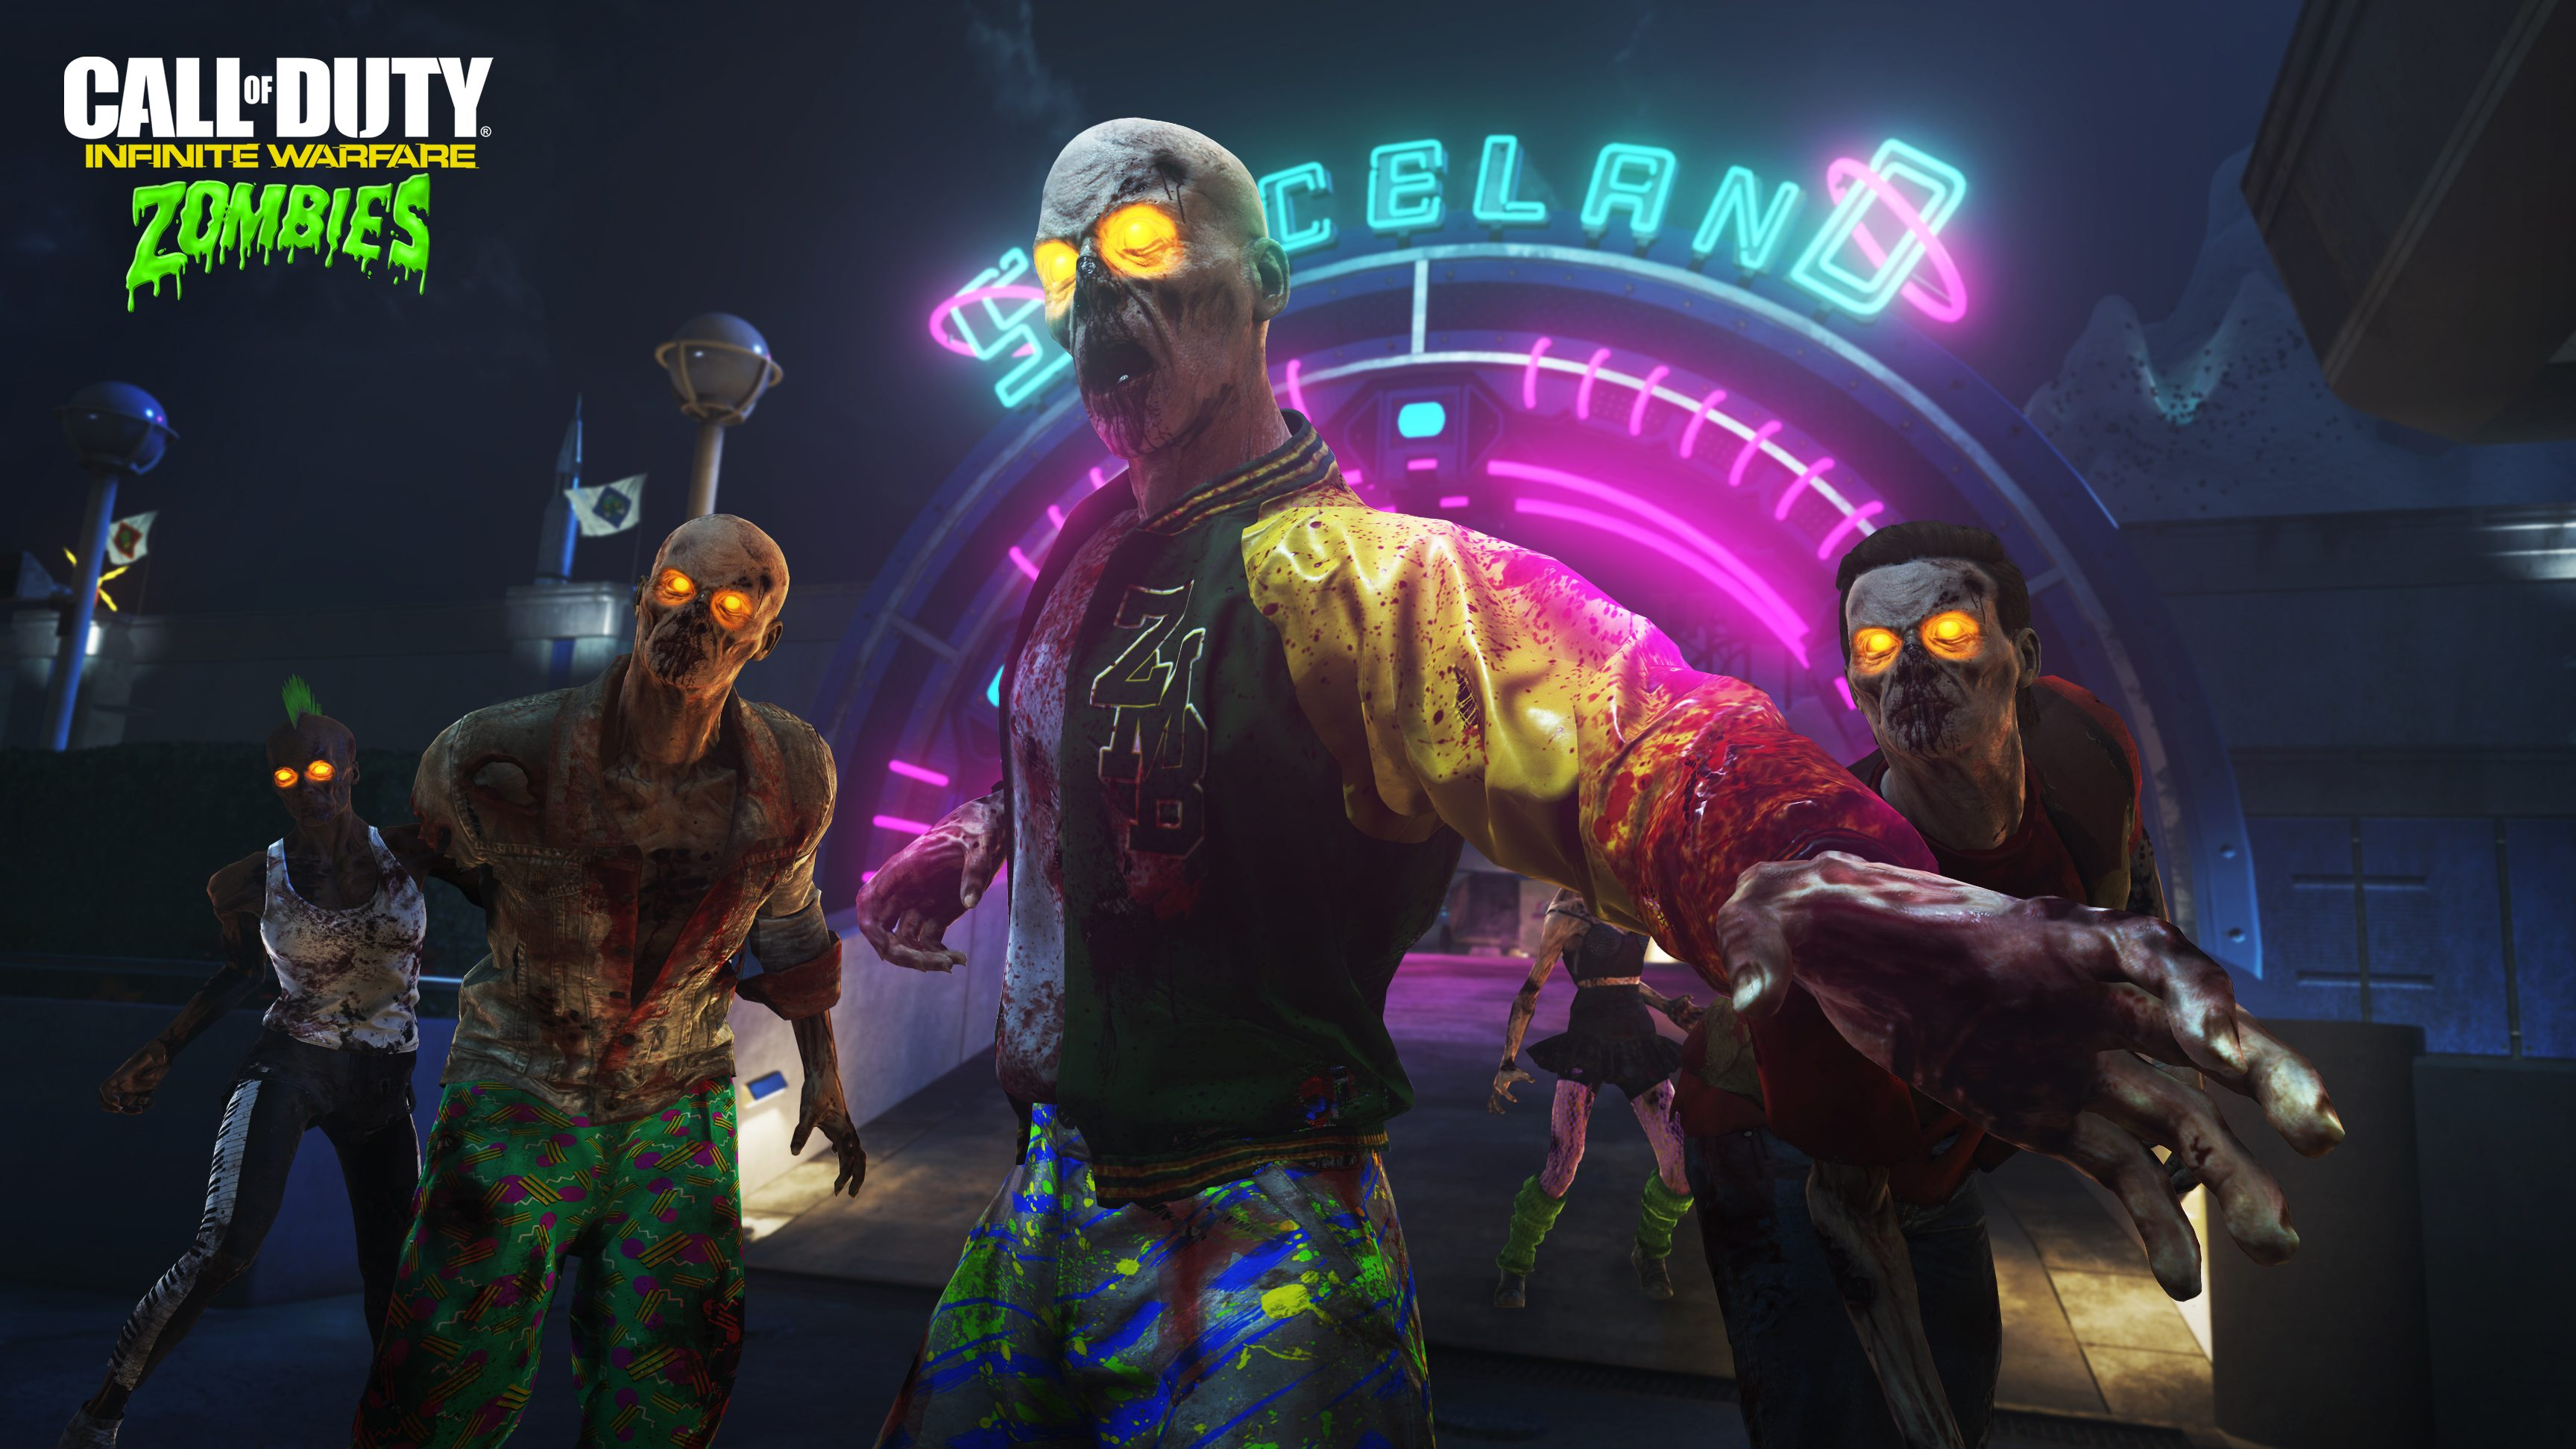 COD Infinite Warfare_Zombies in Spaceland 1_WM